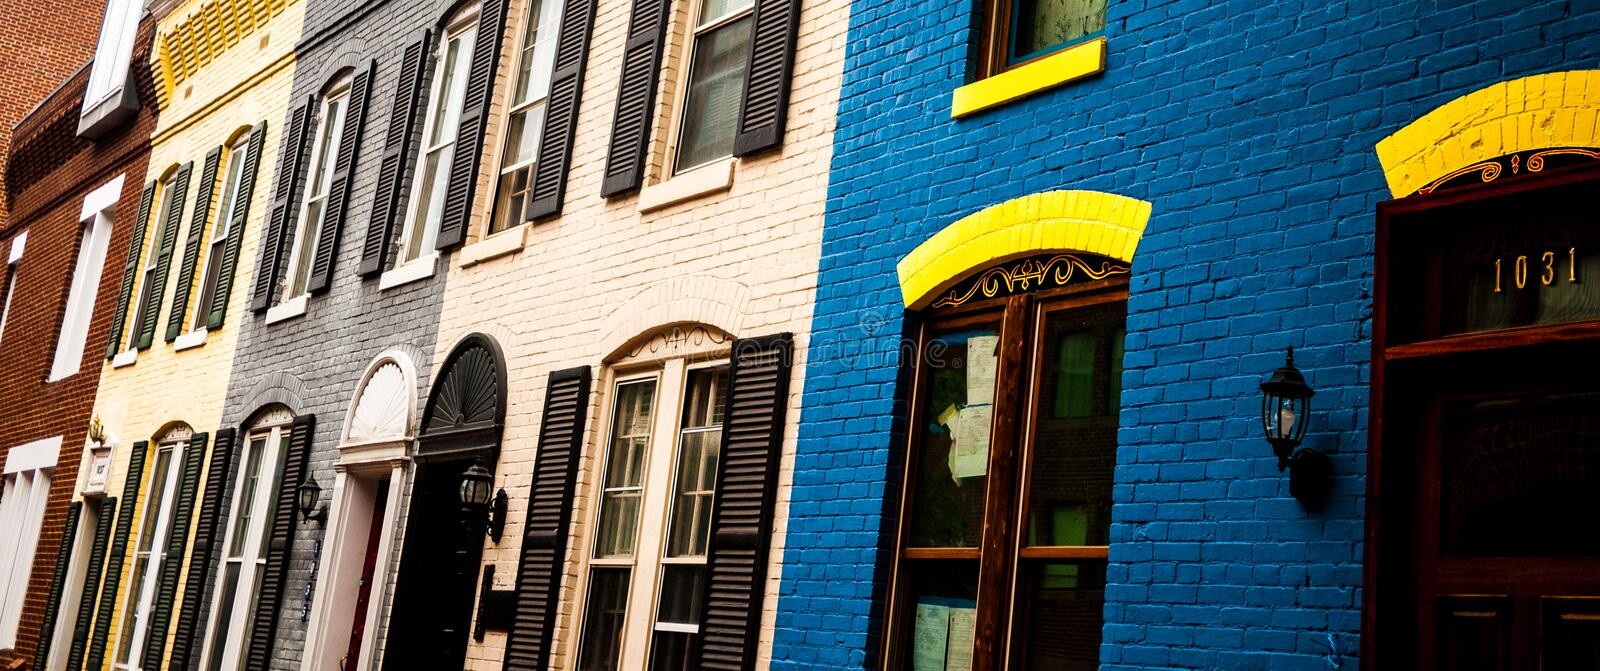 Houses in georgetown royalty free stock photo